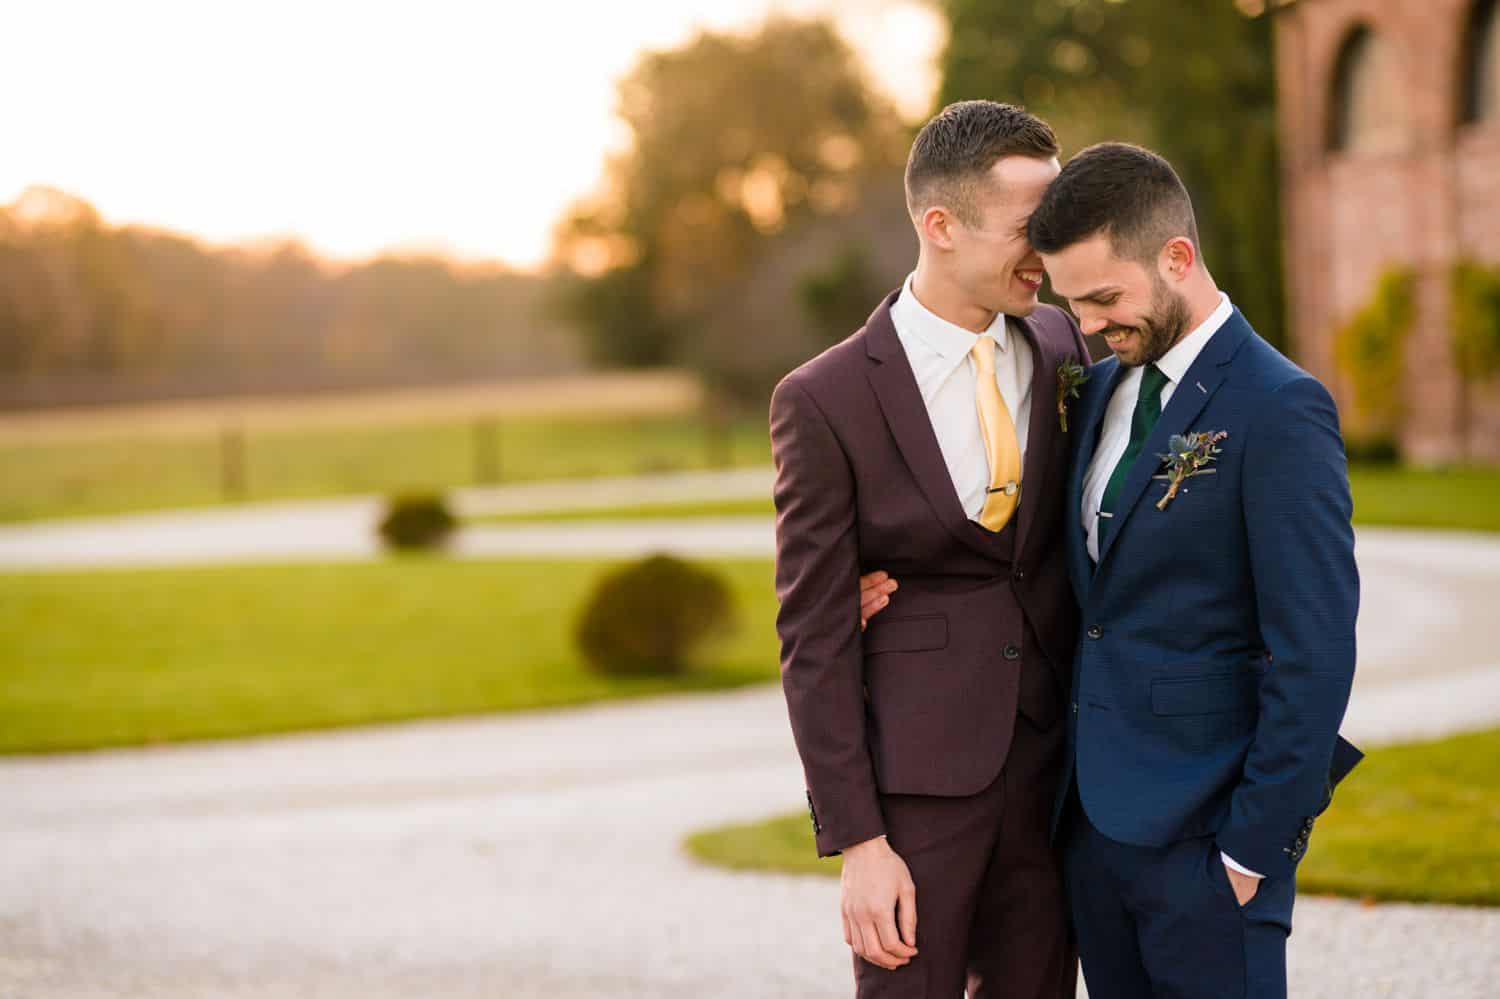 Two grooms snuggle close outside on their wedding day